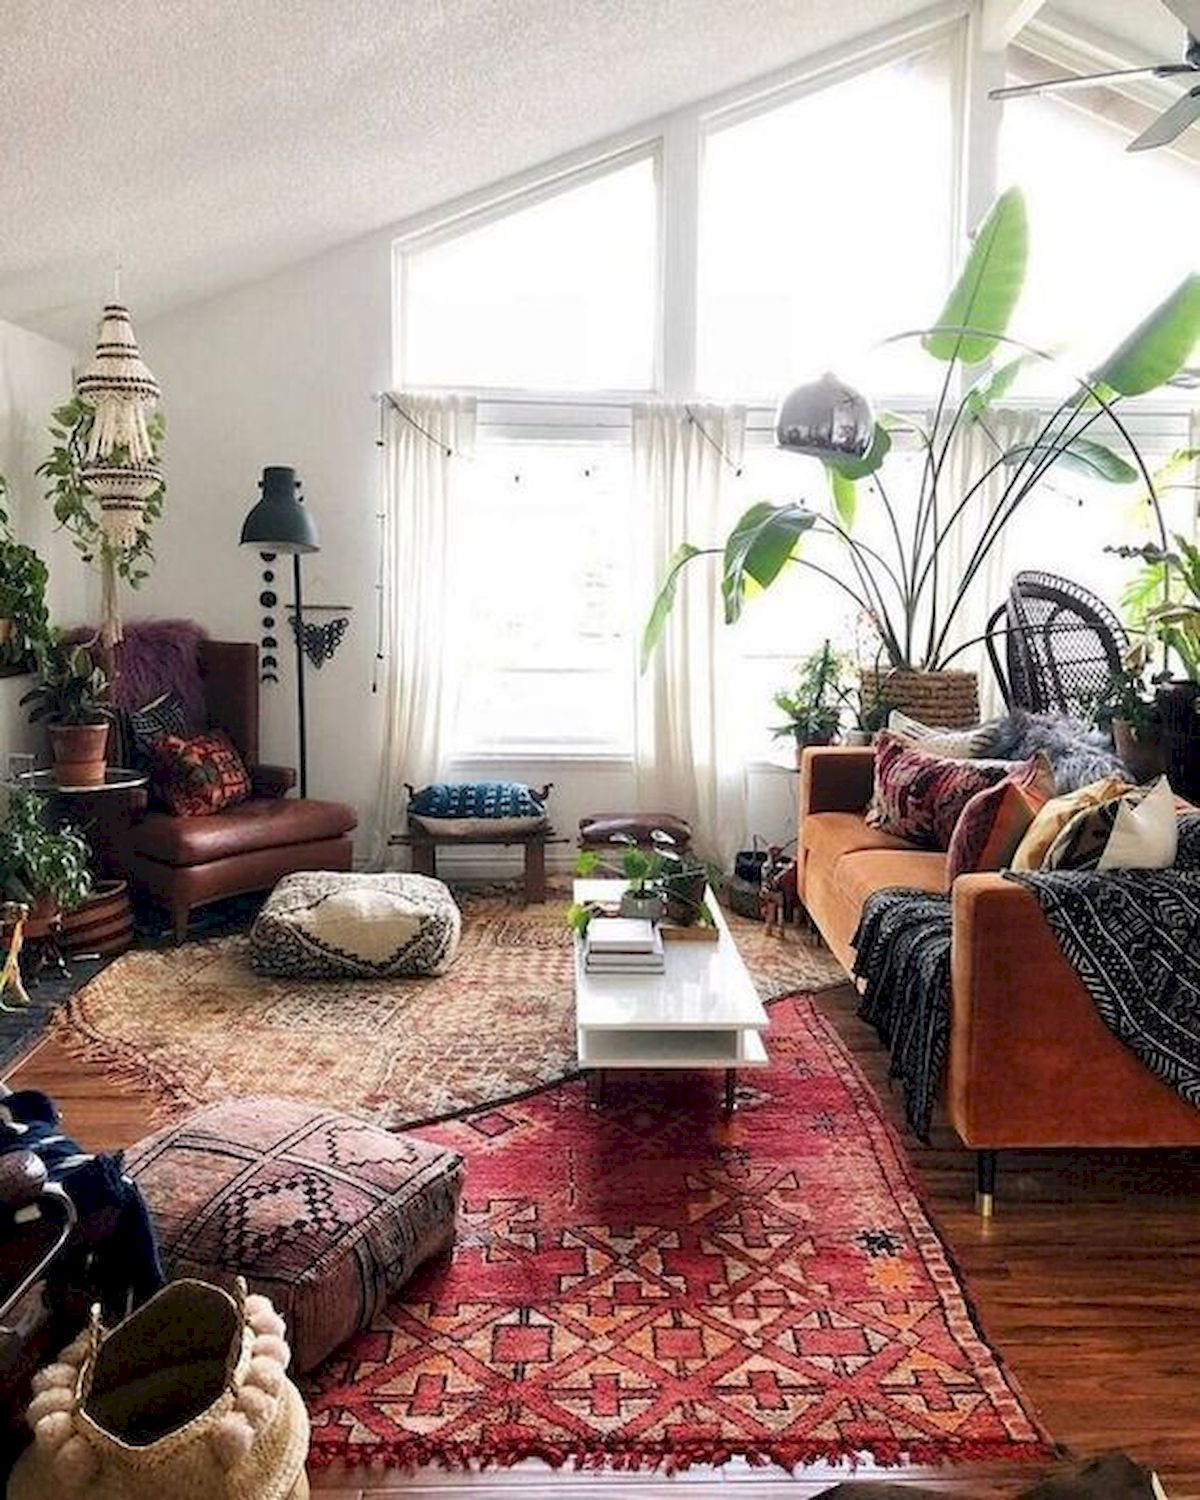 Small Boho Living Room: 55 Bohemian Living Room Decor Ideas (15)